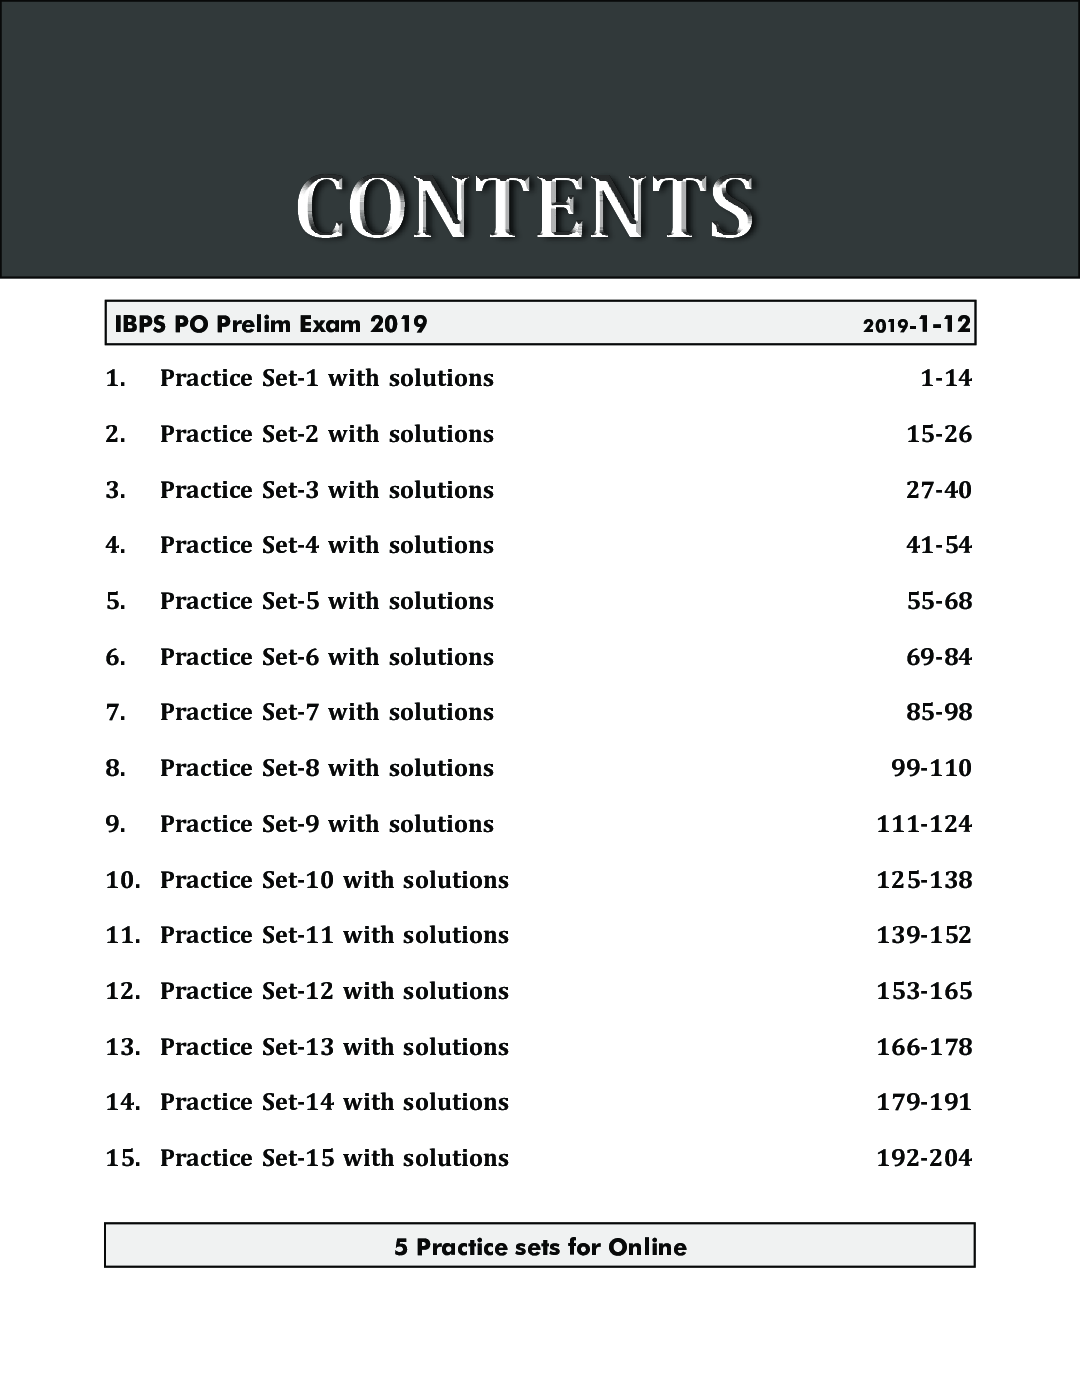 20 Practice Sets For IBPS PO/ MT Preliminary Exam 2020 With 5 Online Tests 5th Edition - Page 4